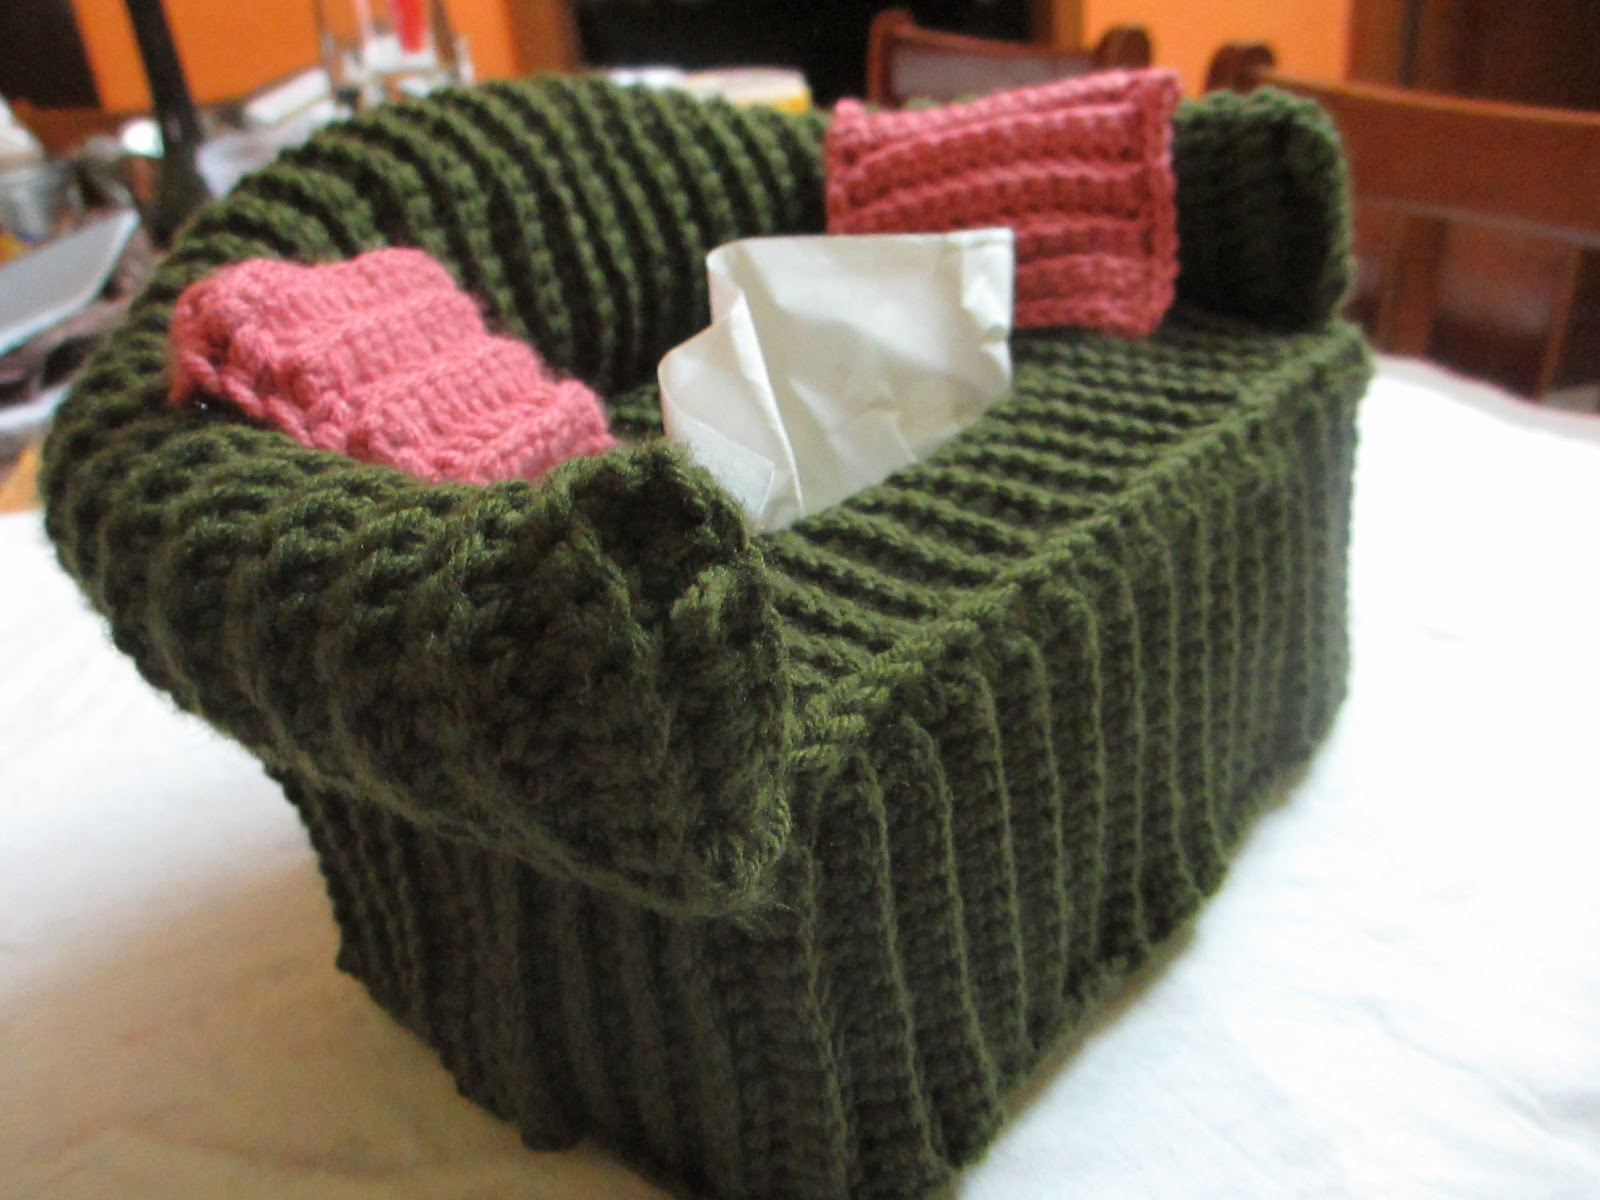 Crochet Sofa Cover Patterns Tribeca Bed Vector Gaming Tissue Box